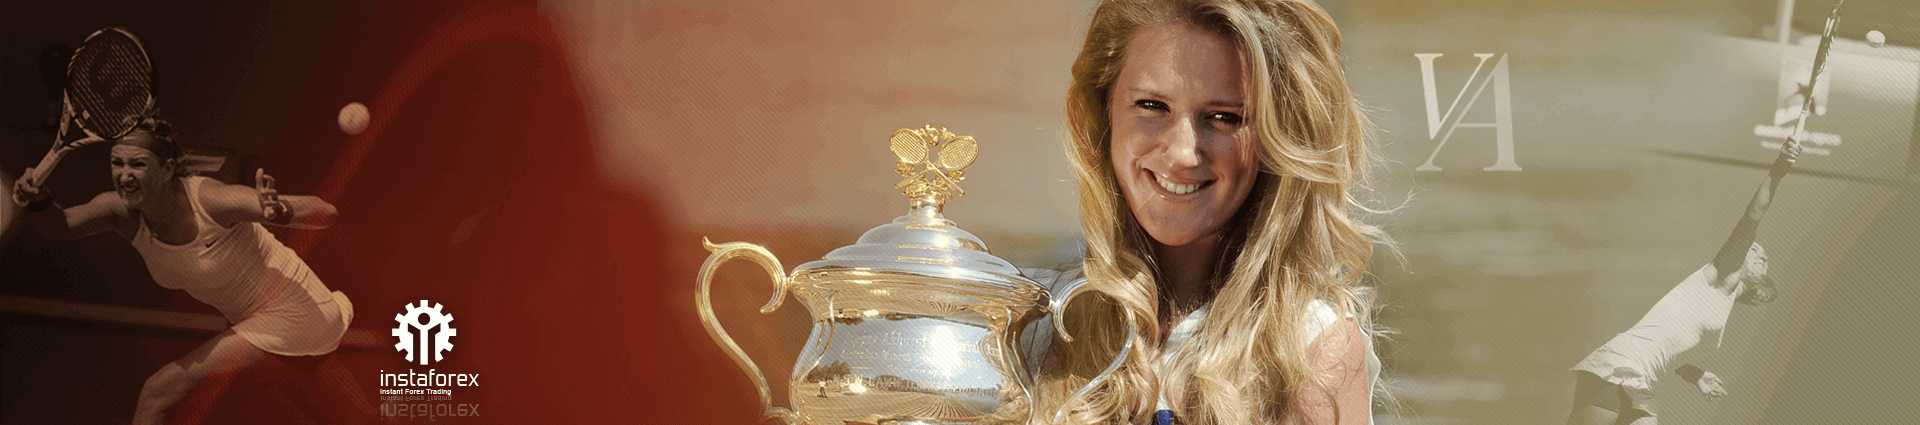 Victoria Azarenka - the face of InstaForex - the world's top-ranked tennis player